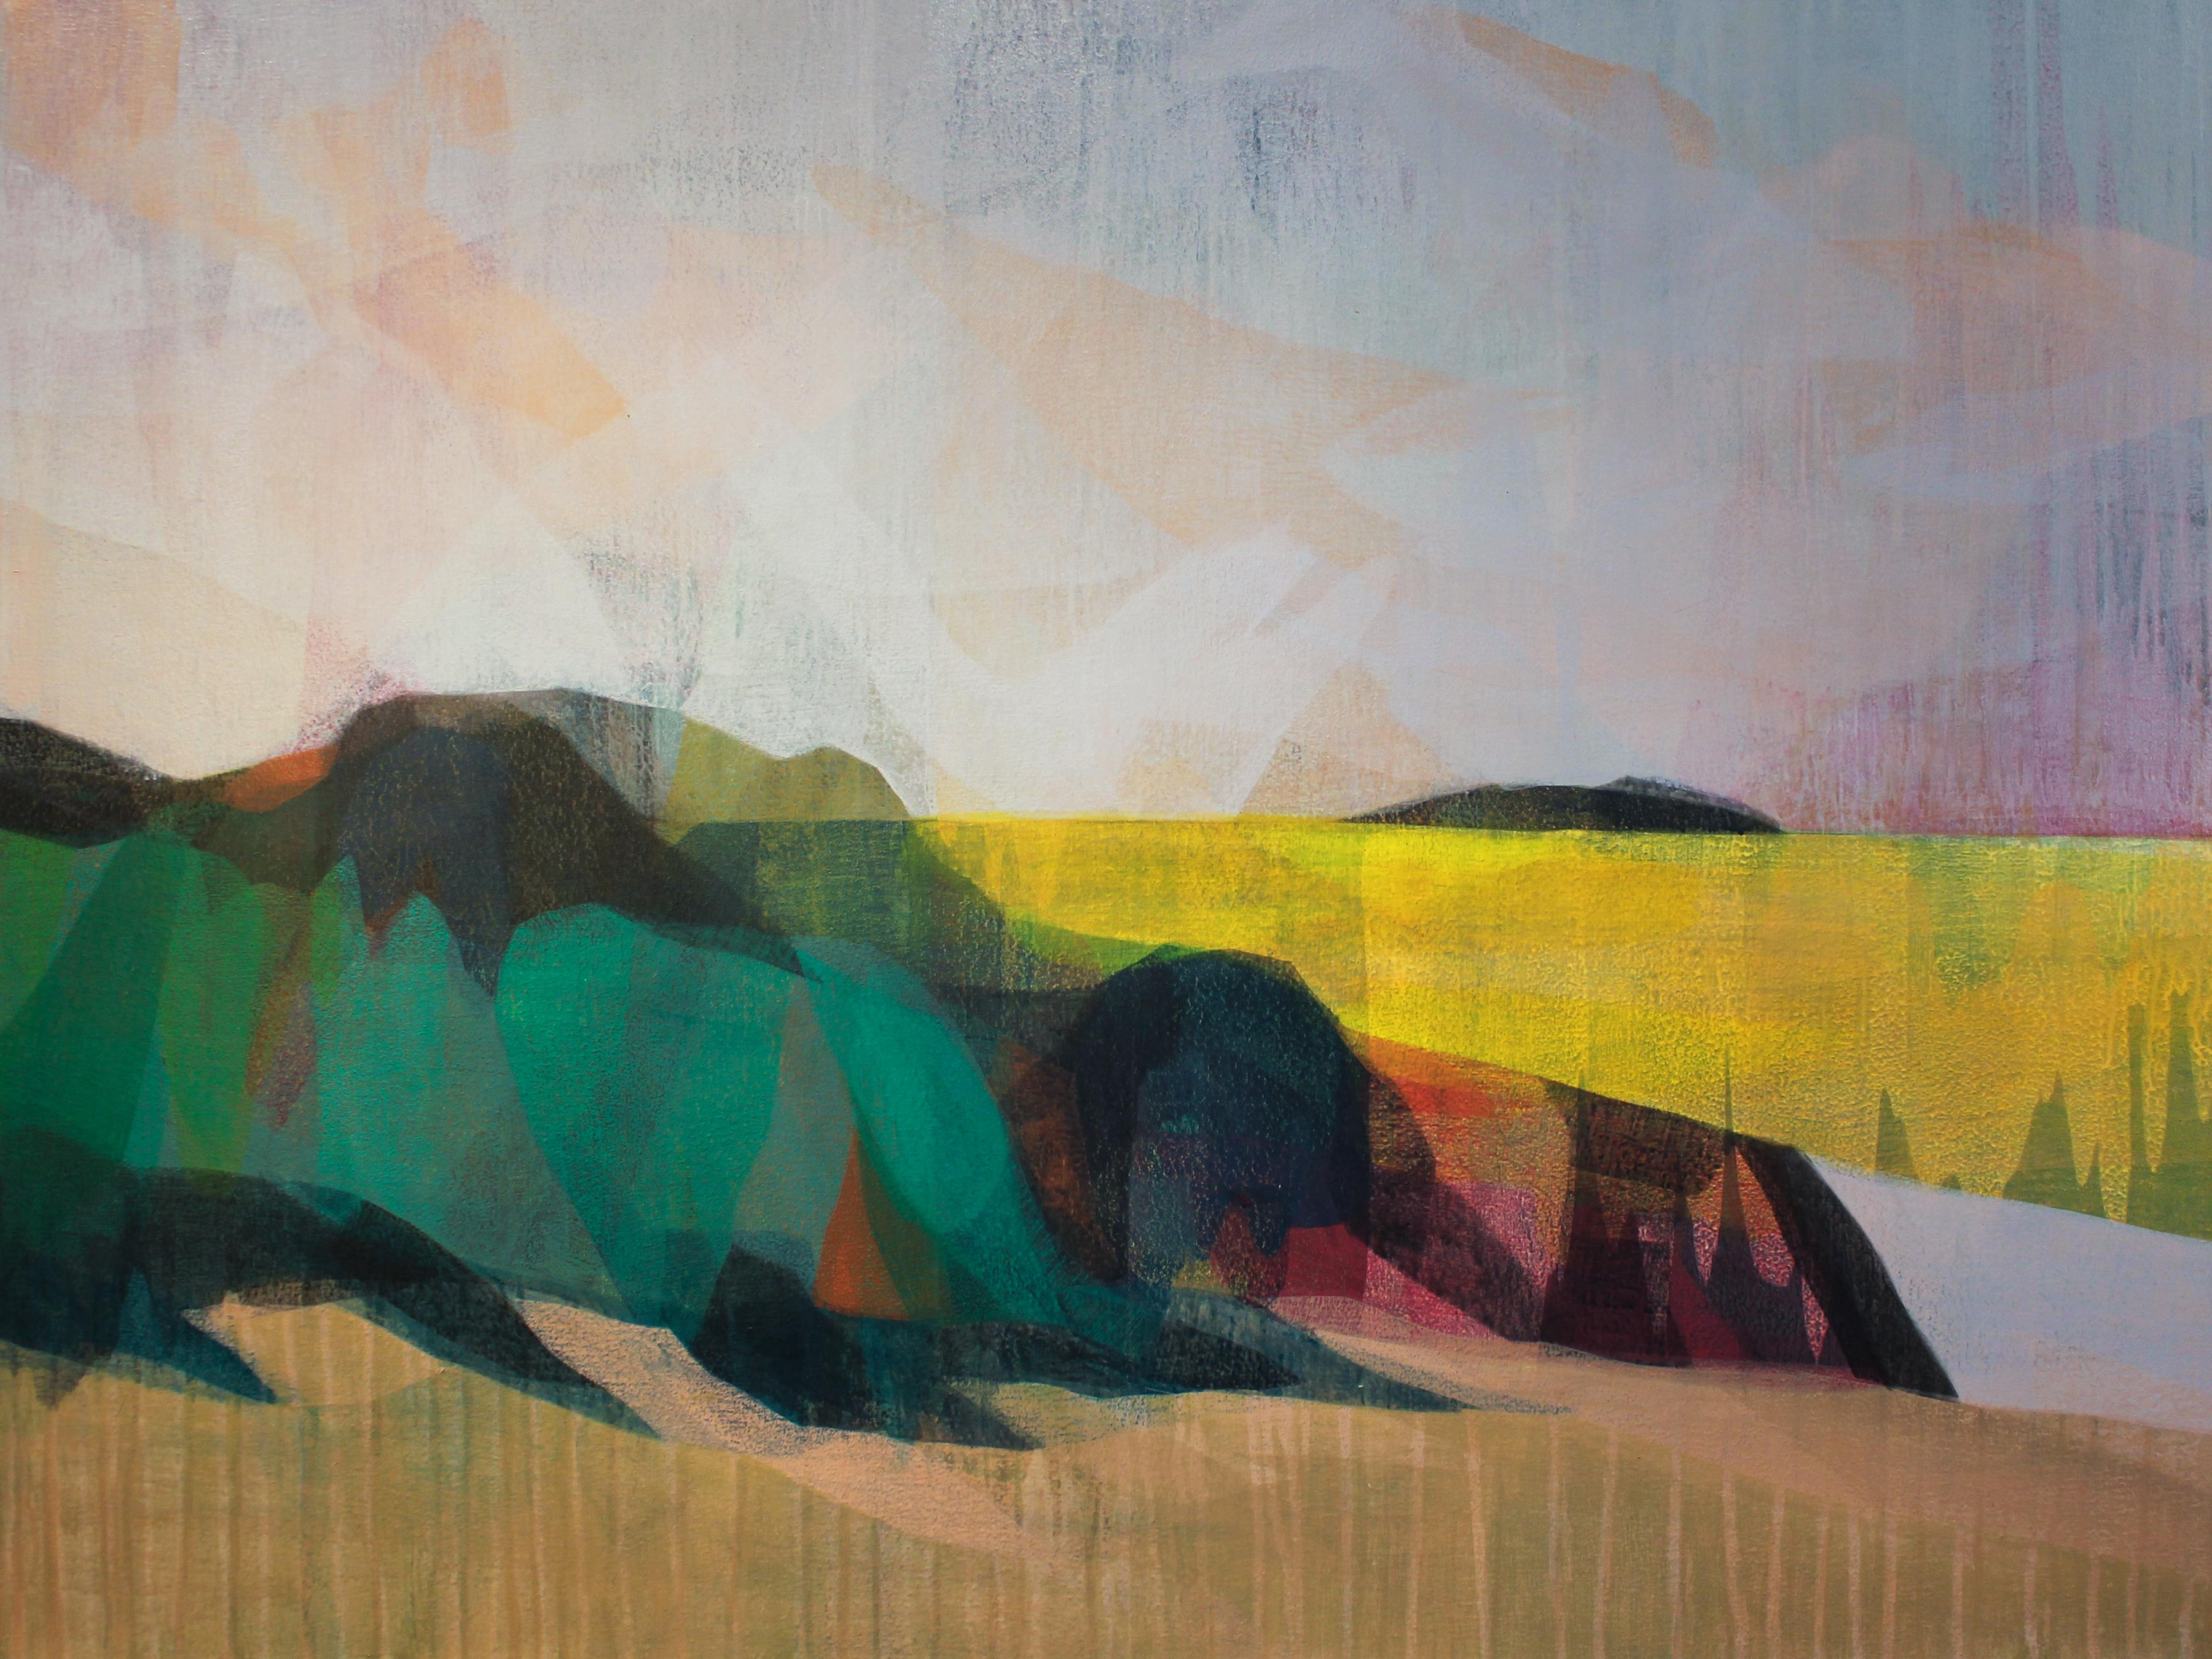 """""""(sequoia) back river yellow"""" - colorful abstract landscape - marsh - Diebenkorn"""